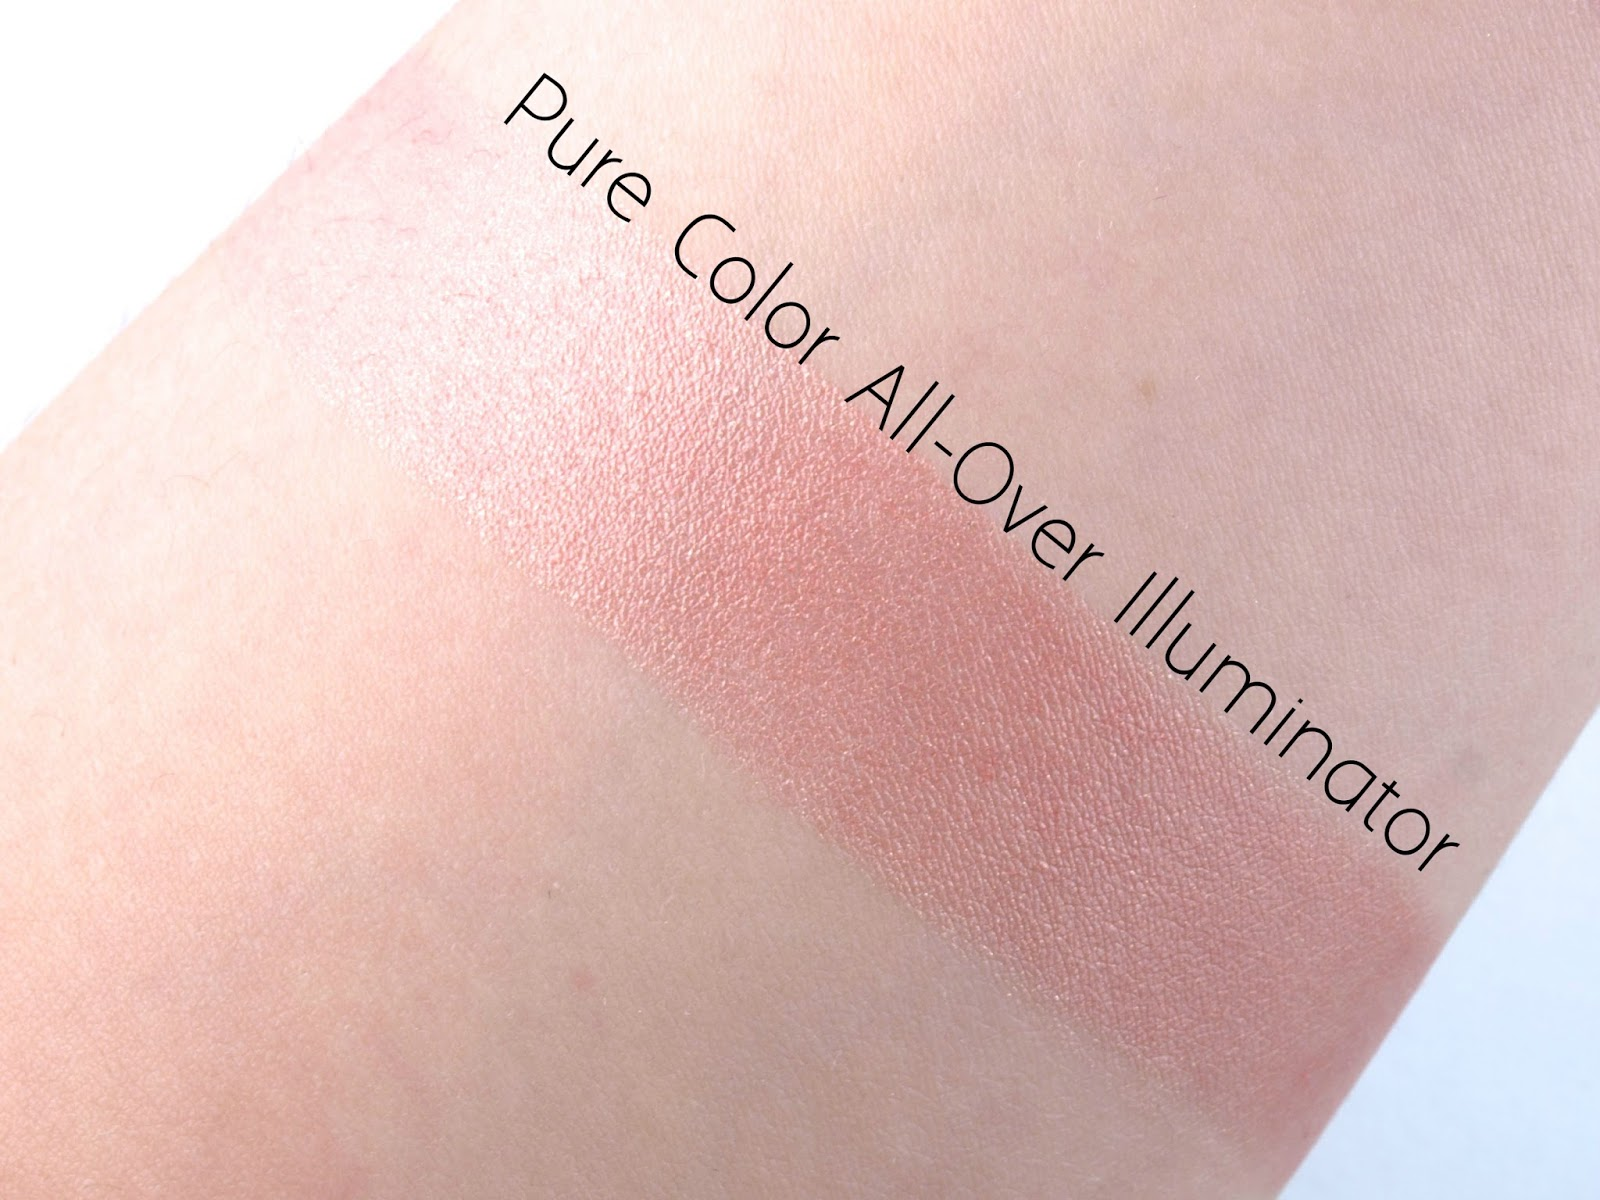 Estee Lauder Pure Color All-Over Illuminator Shimmering Highlight for Face & Body: Review and Swatches